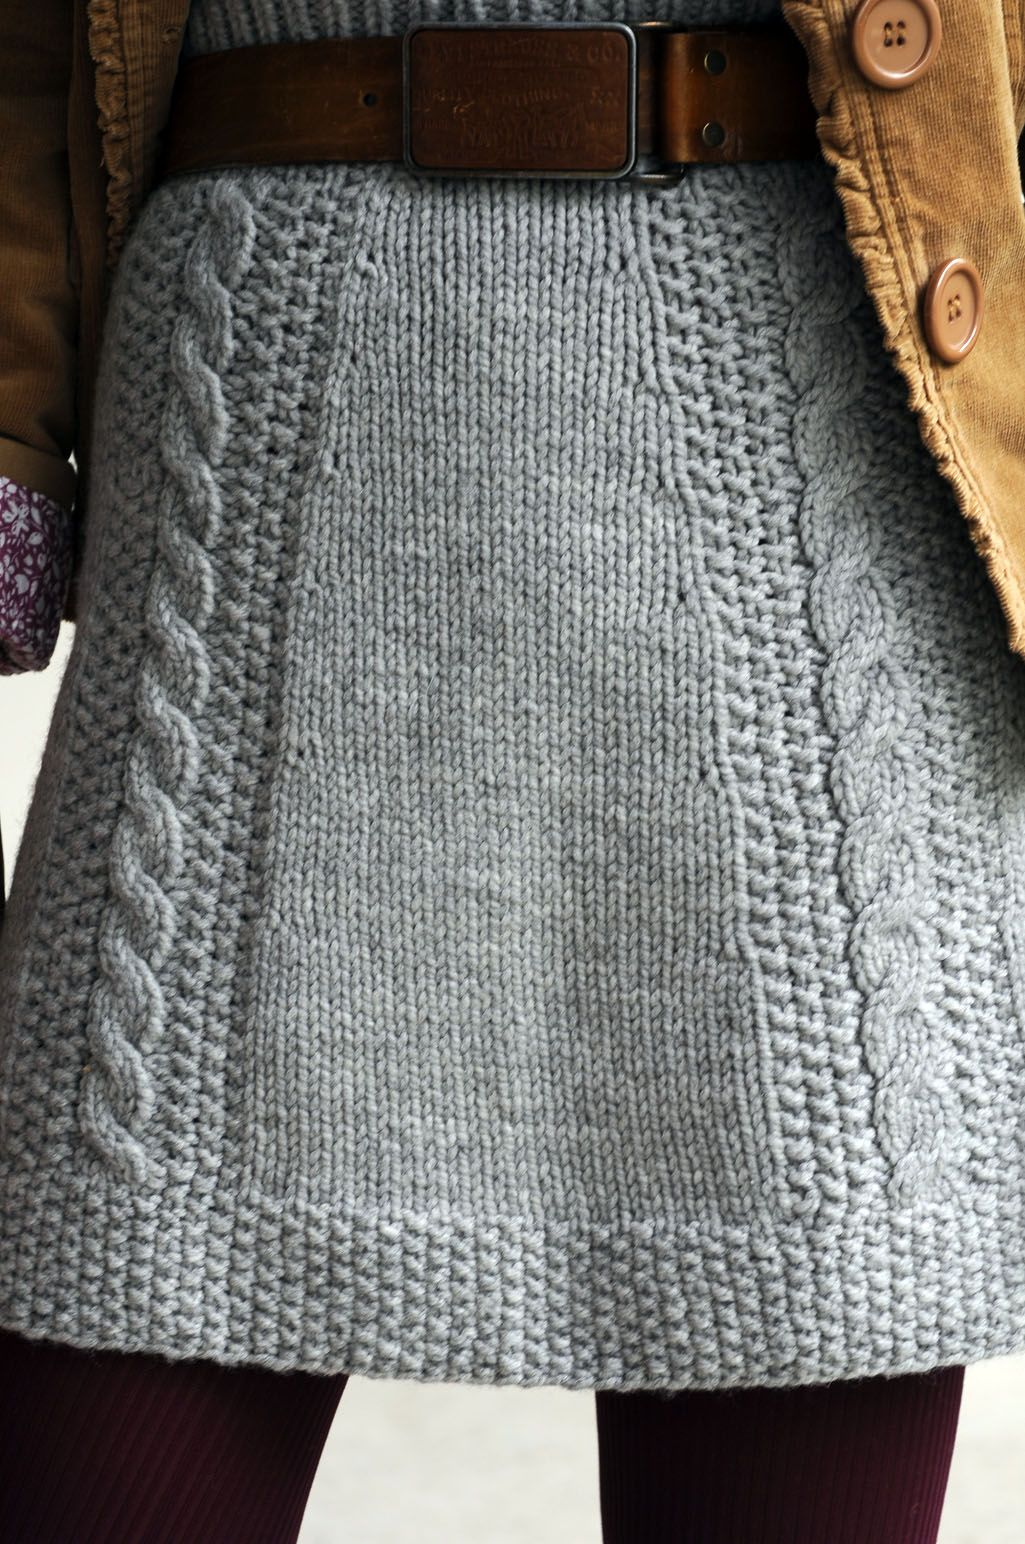 Knitting: Magazines, eBooks, Videos, Articles, Guides